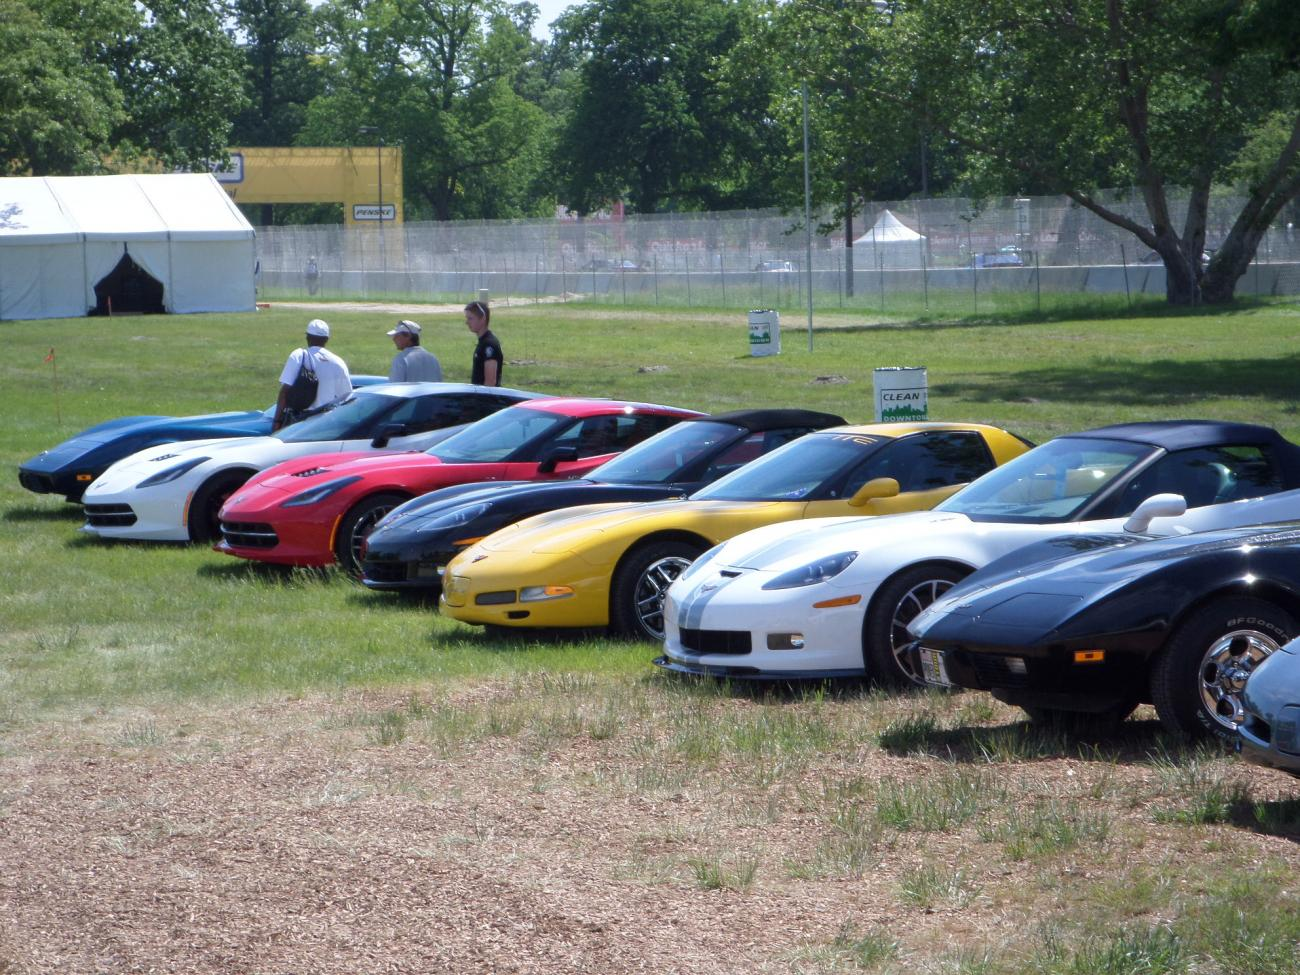 detroit grand prix pic heavy chevrolet corvette. Black Bedroom Furniture Sets. Home Design Ideas